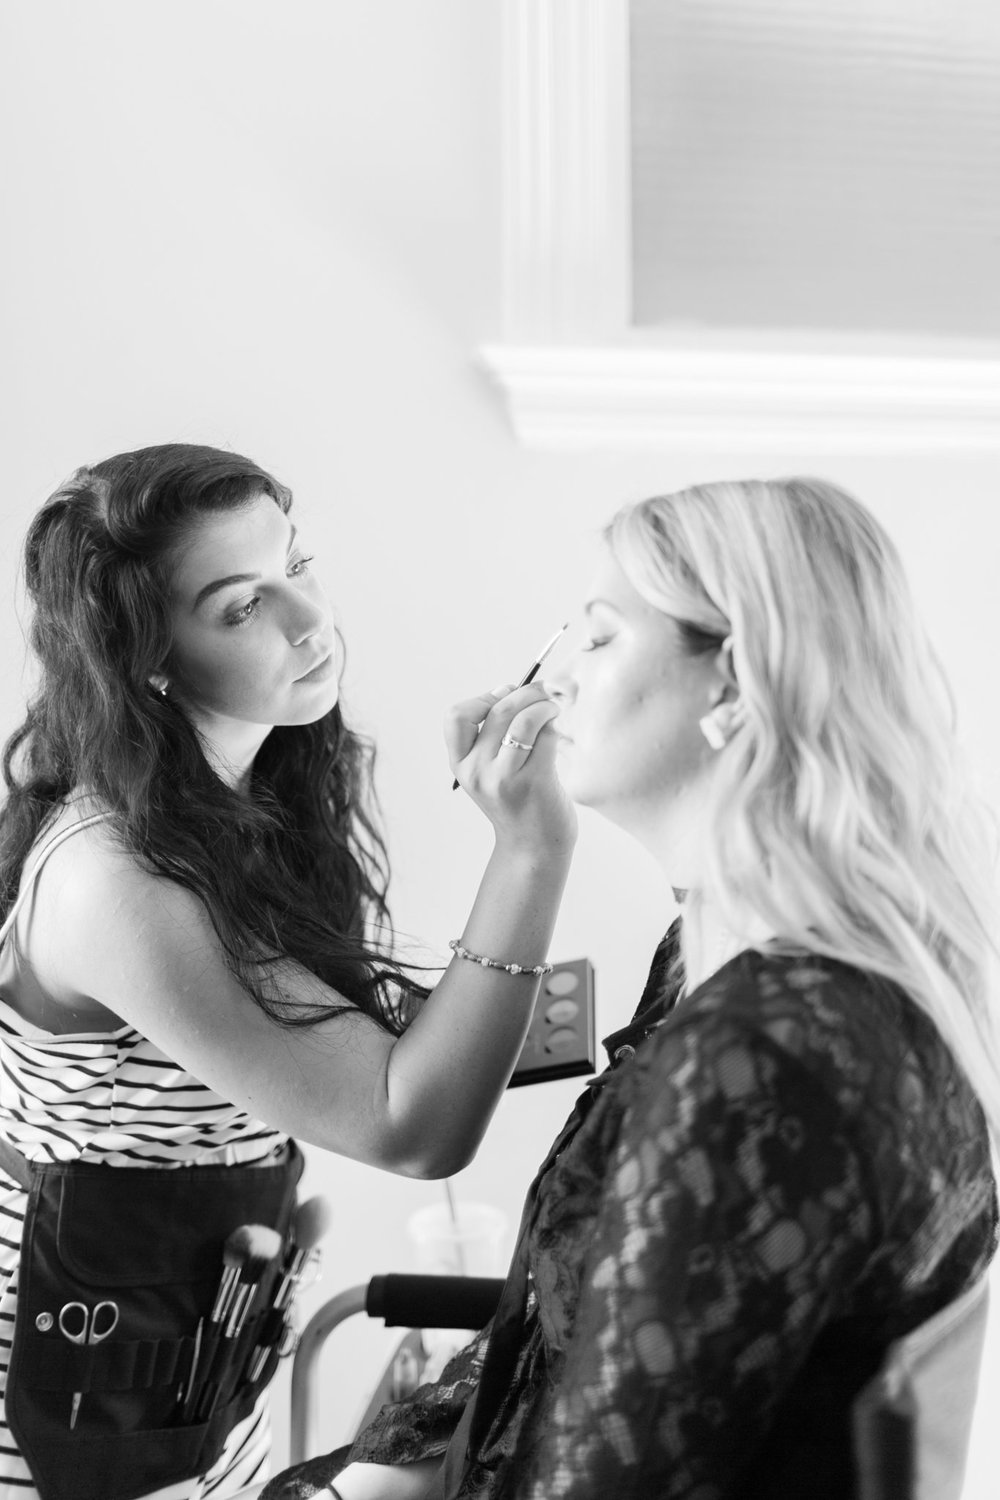 Makeup By Andrea Rachelle-Andrea Squires-0020.jpg